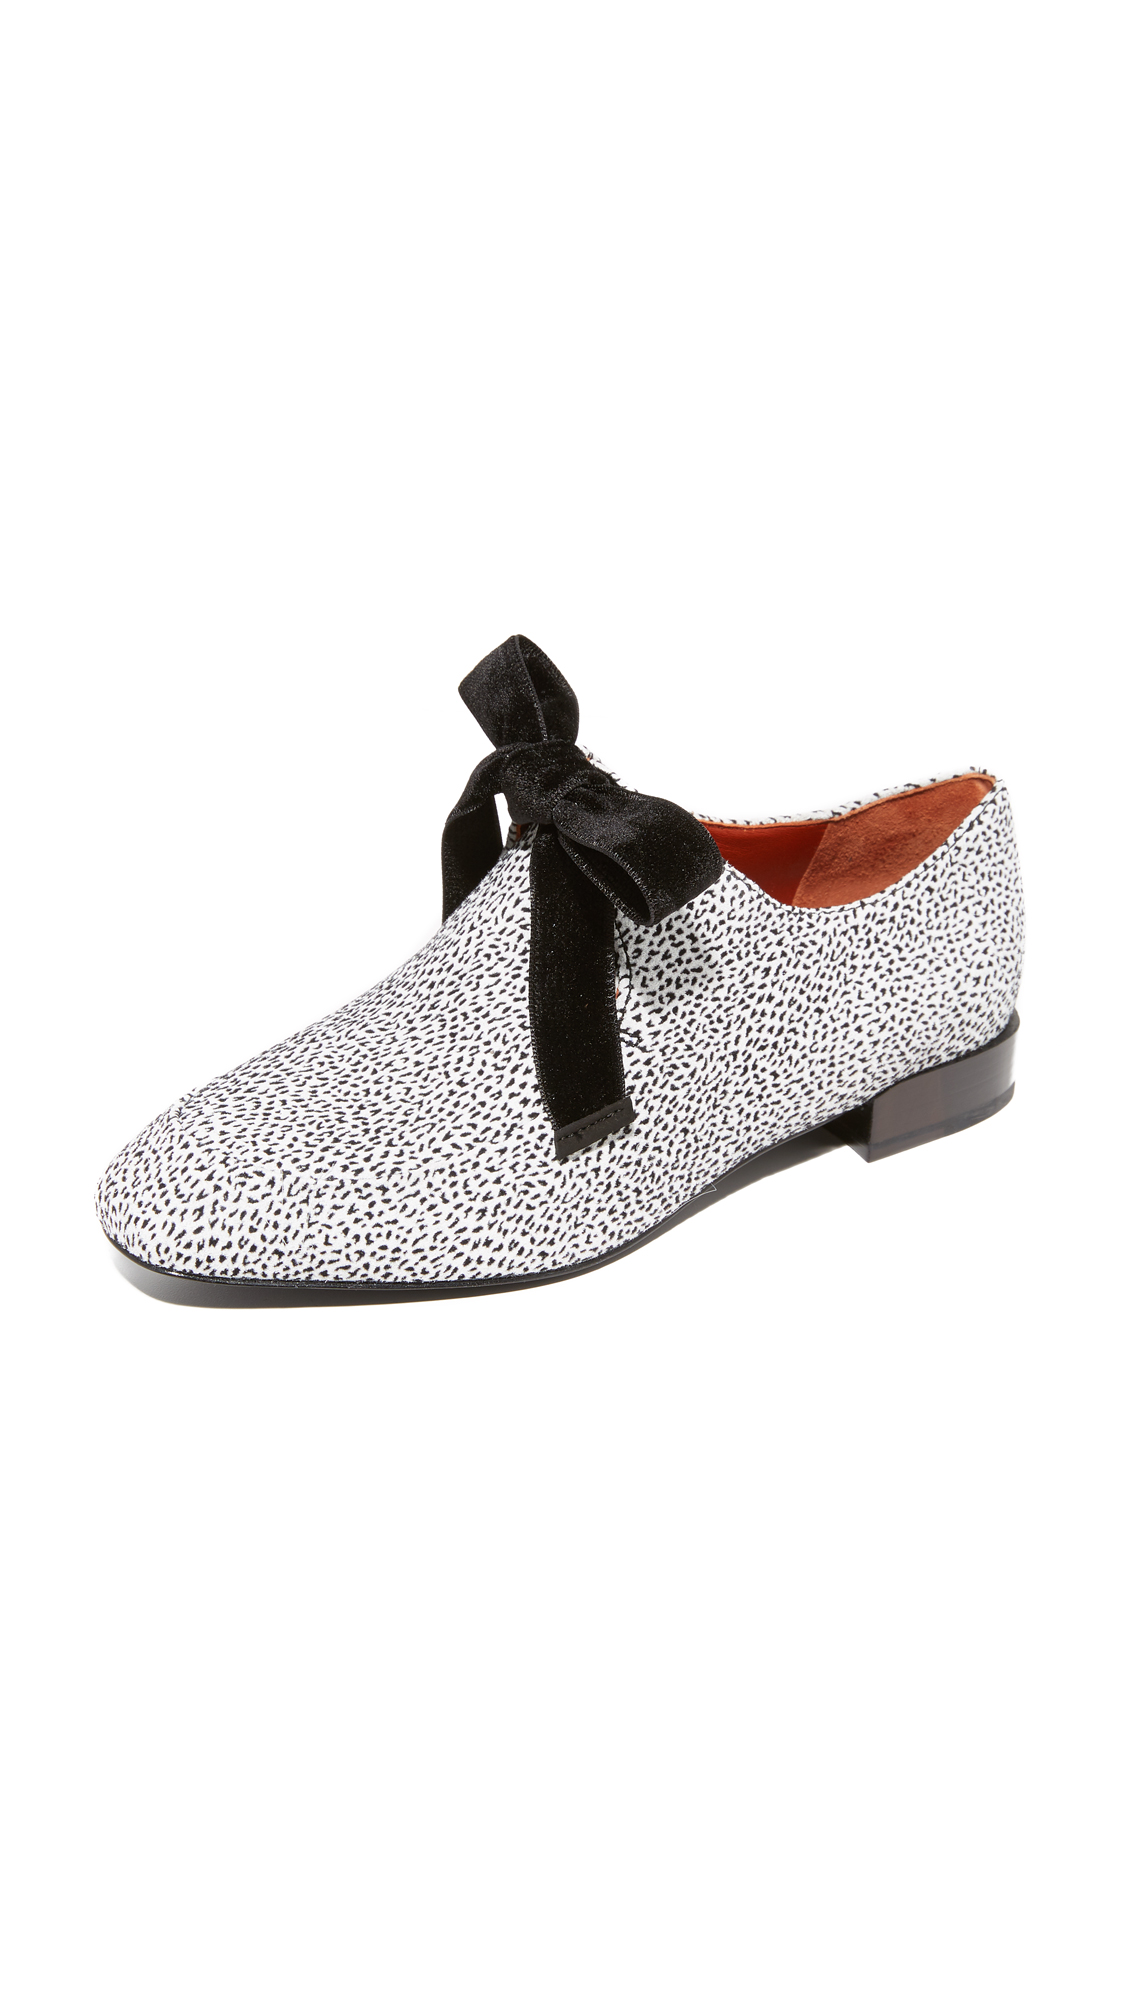 3.1 Phillip Lim Square Toe Lace Up Flats - White Cheetah